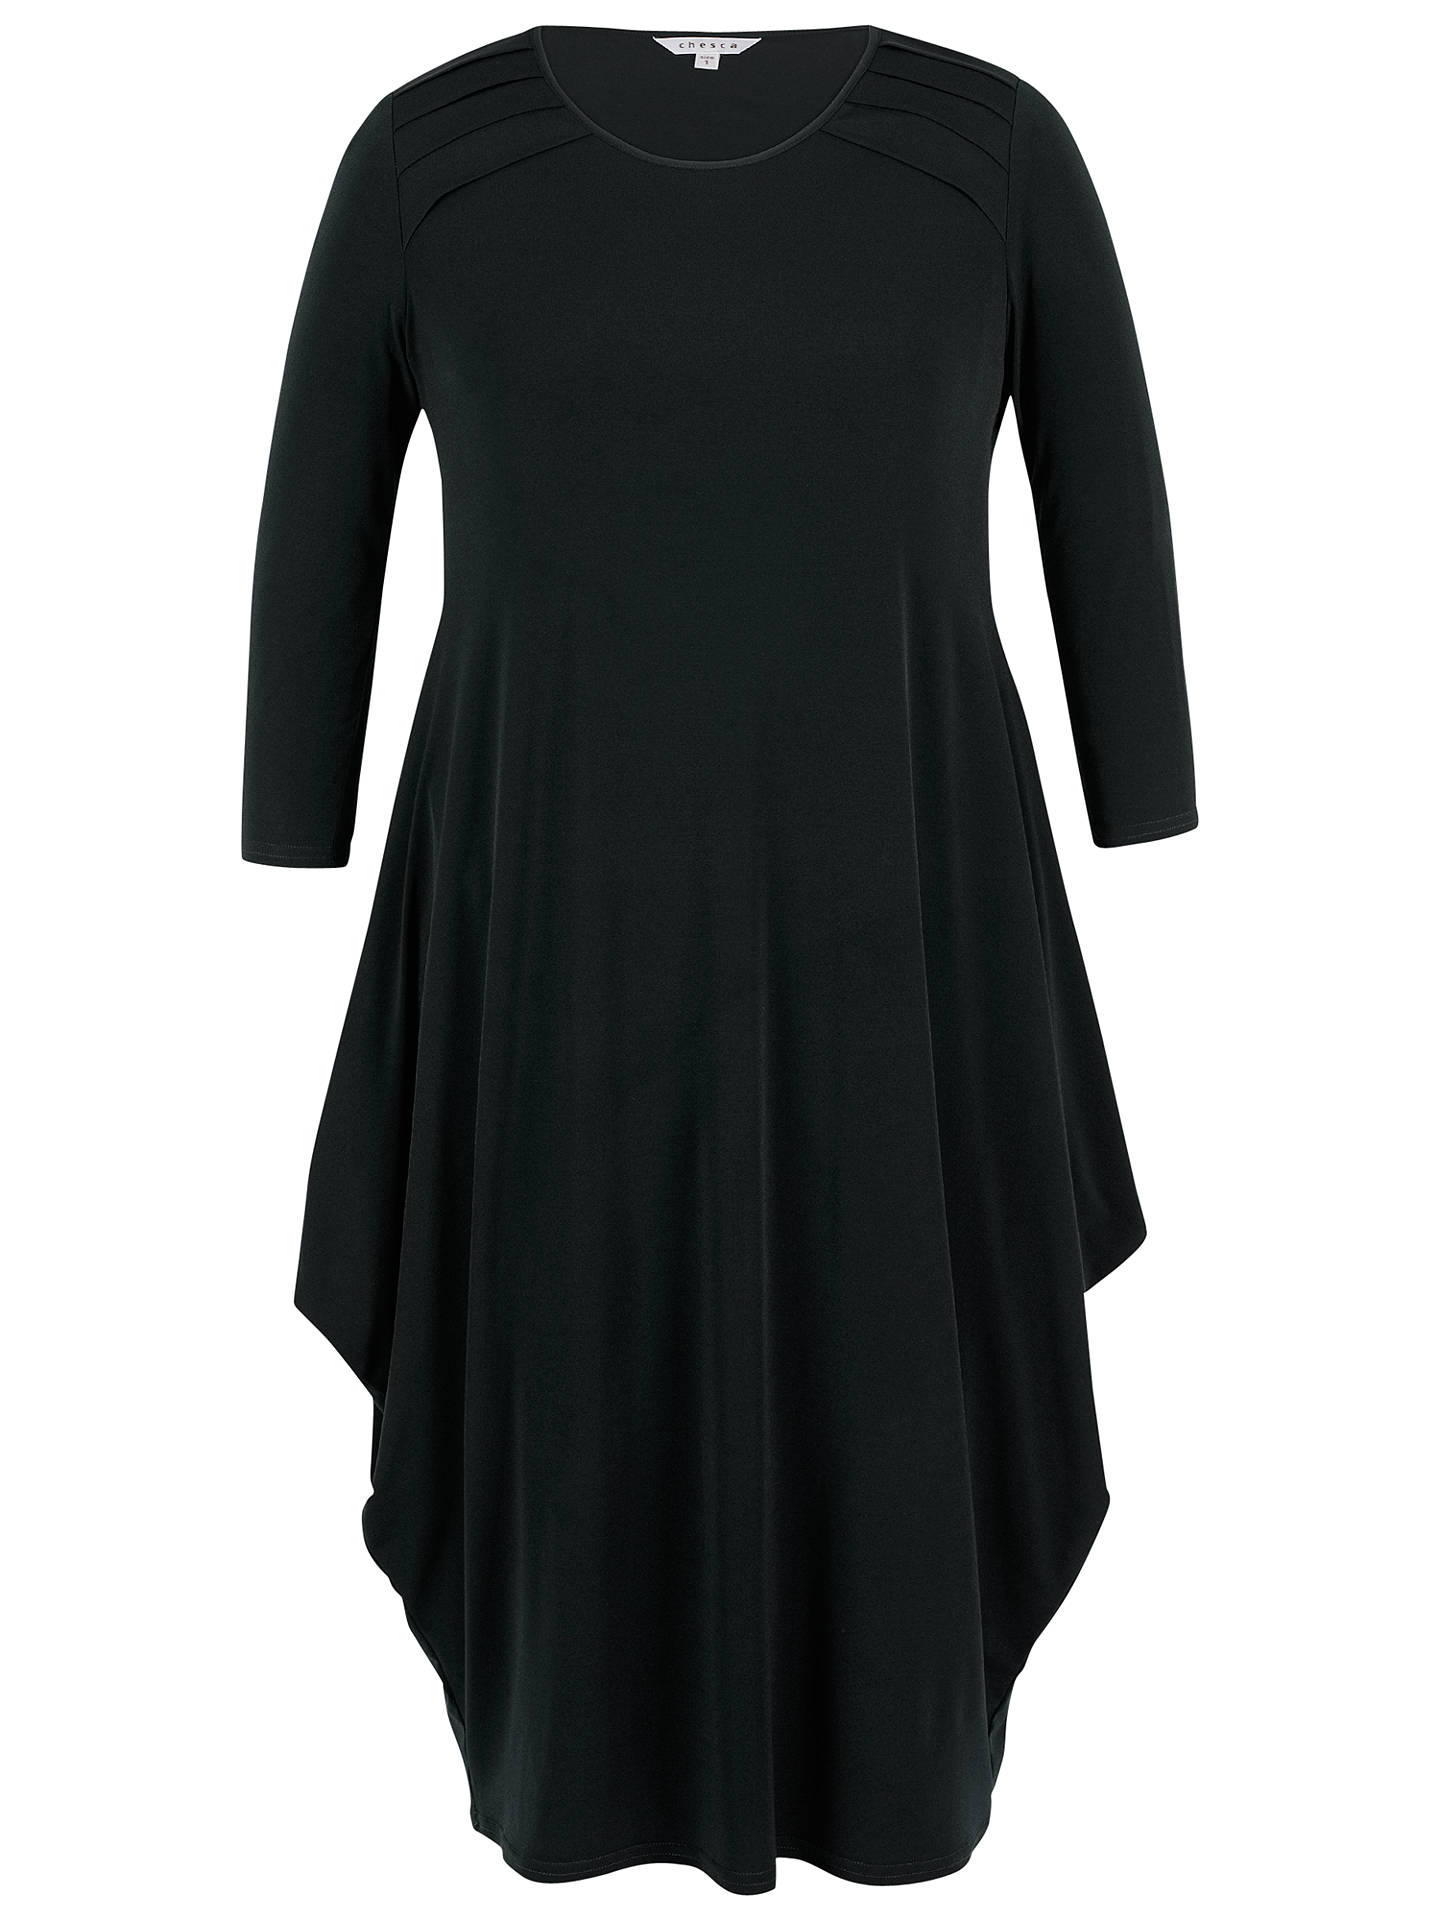 BuyChesca Tuck Detail Jersey Dress, Black, 12-14 Online at johnlewis.com